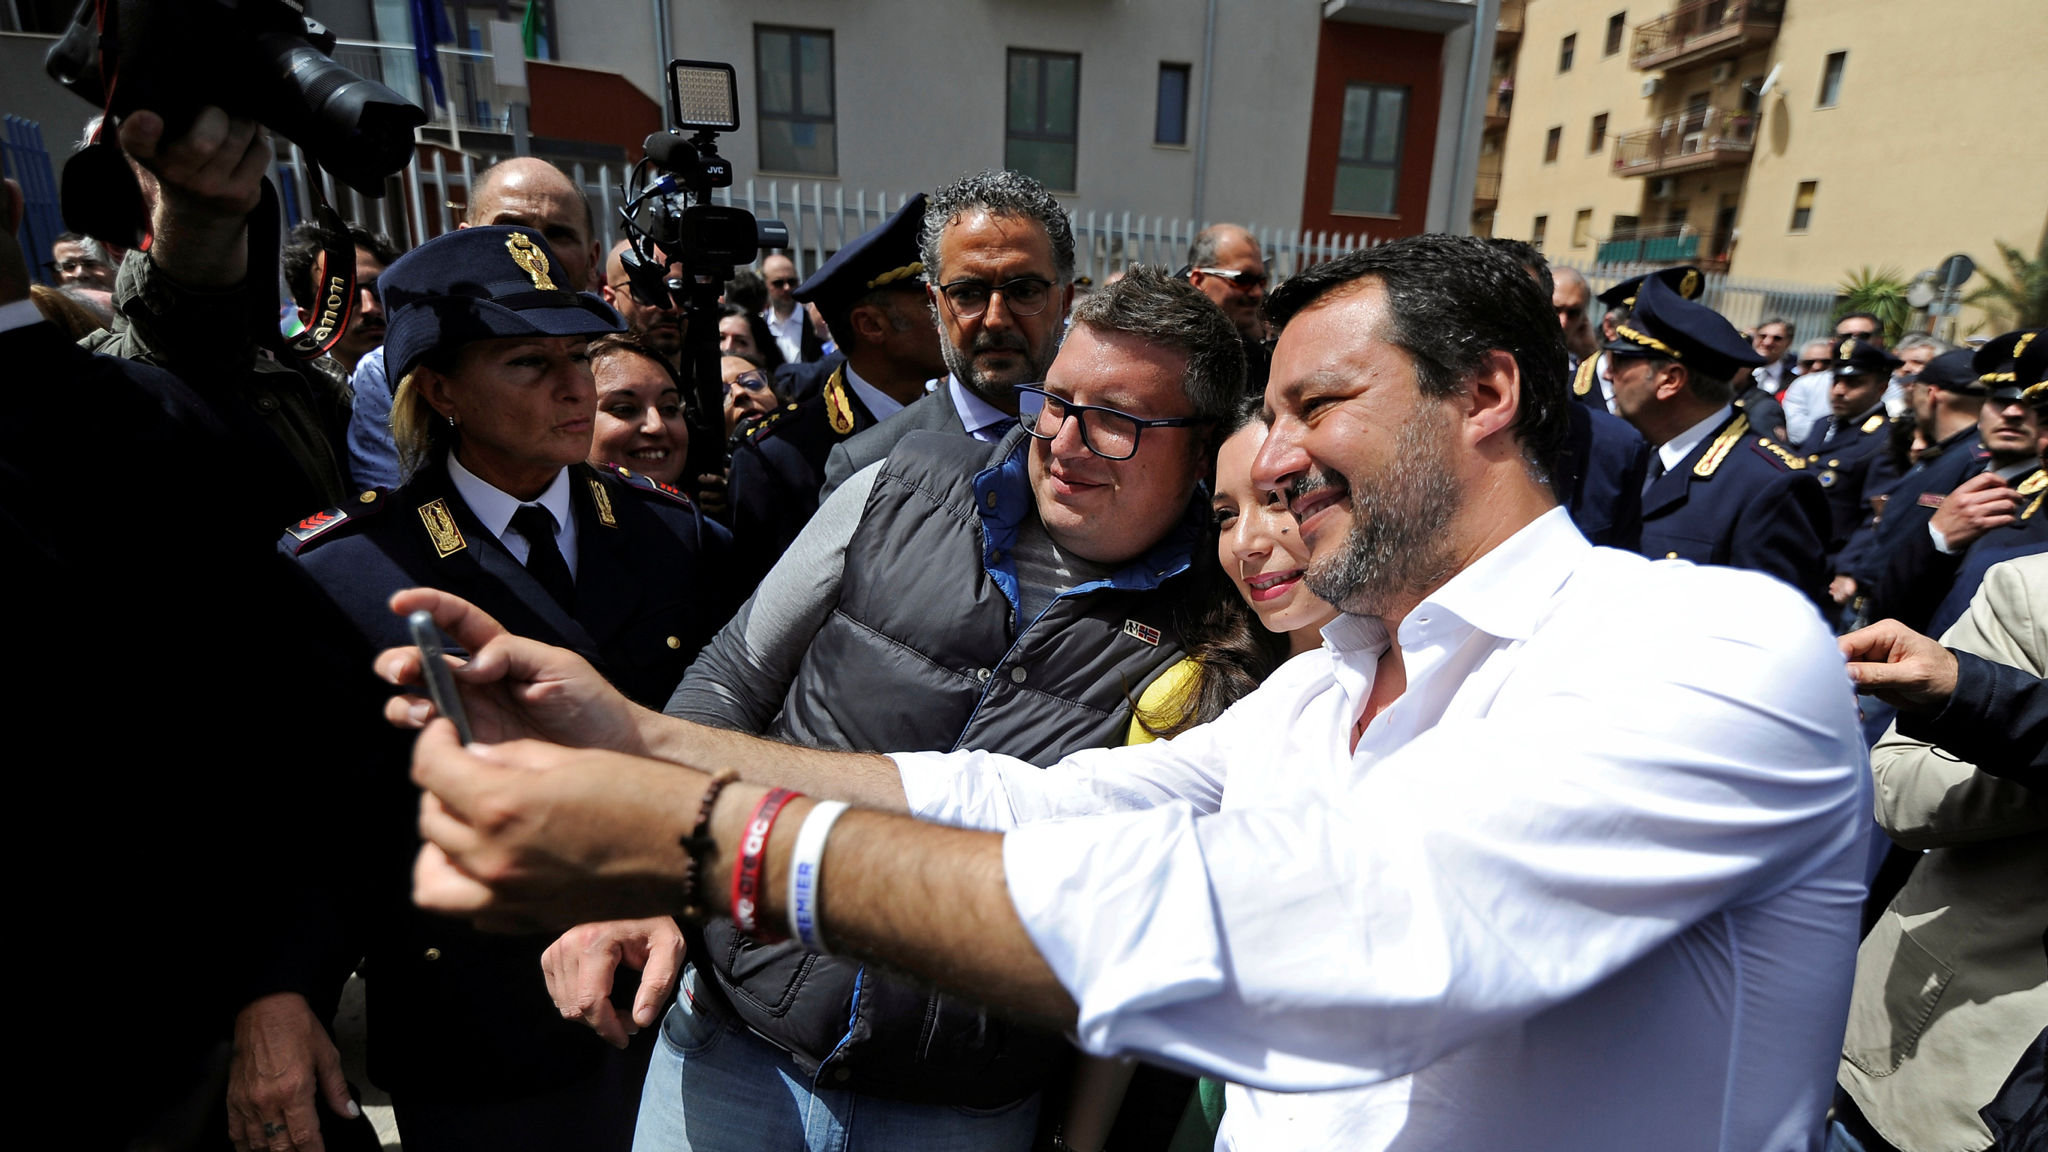 Disillusioned Sicilians Look To League S Salvini For Salvation Financial Times